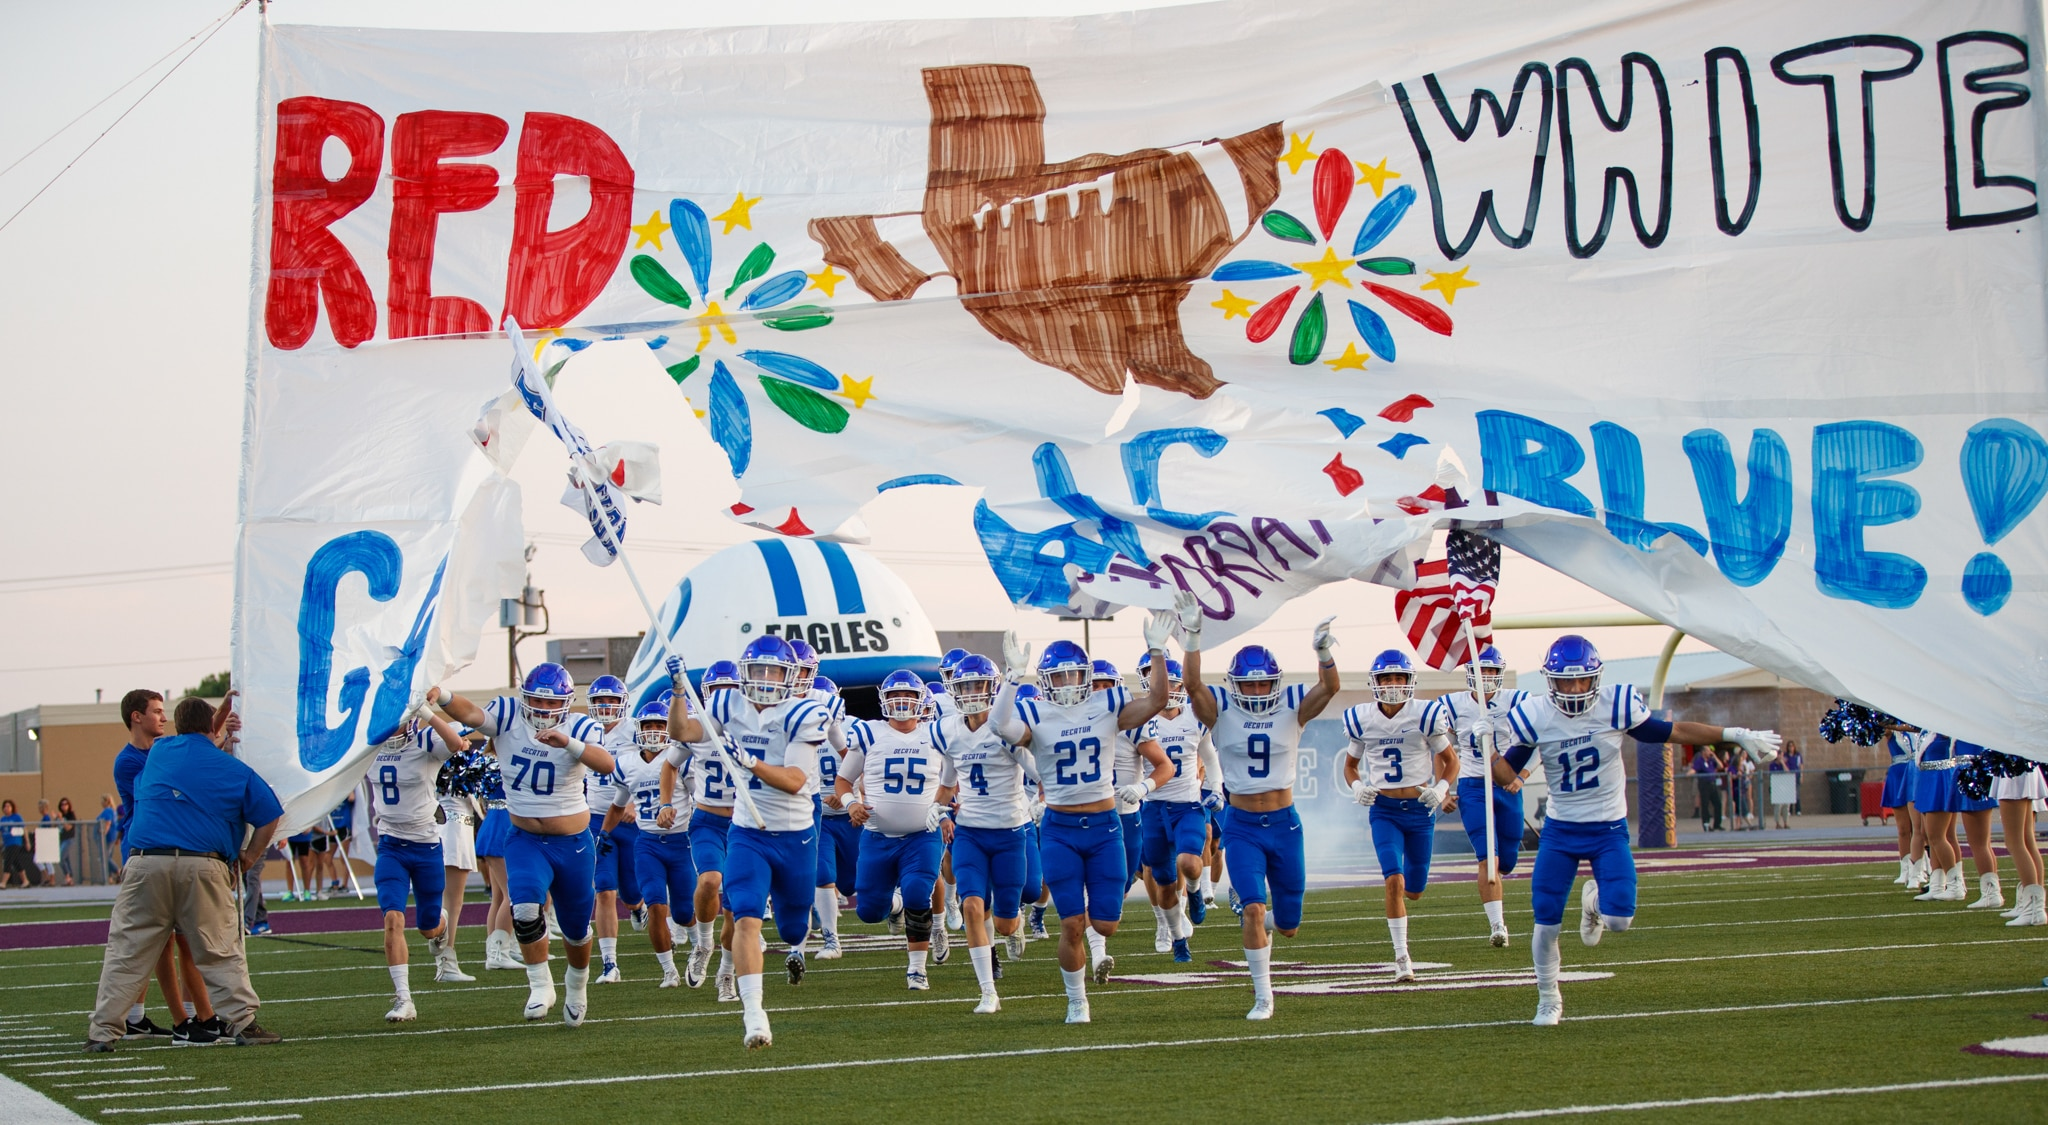 Football players running through large team sign onto playing field (© Tim Richardson)